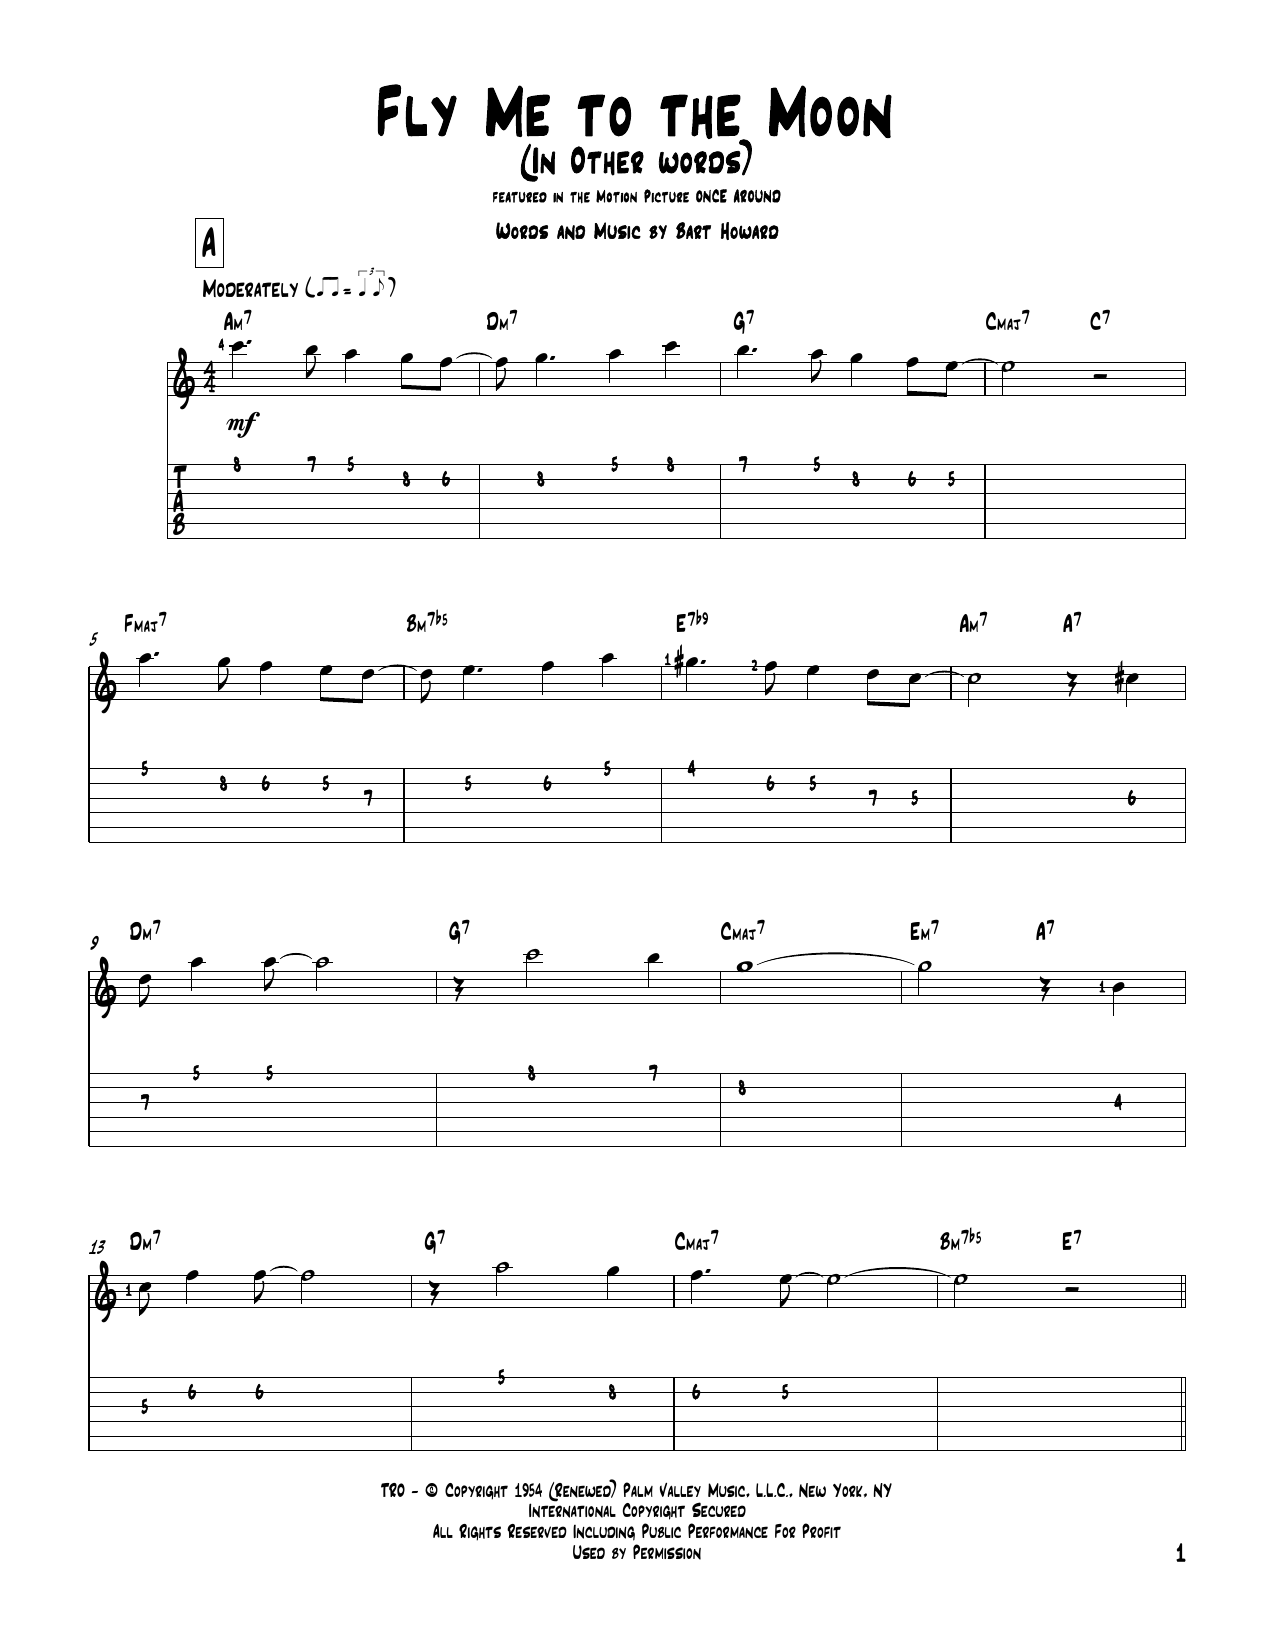 Bart Howard Fly Me To The Moon (In Other Words) sheet music notes and chords. Download Printable PDF.